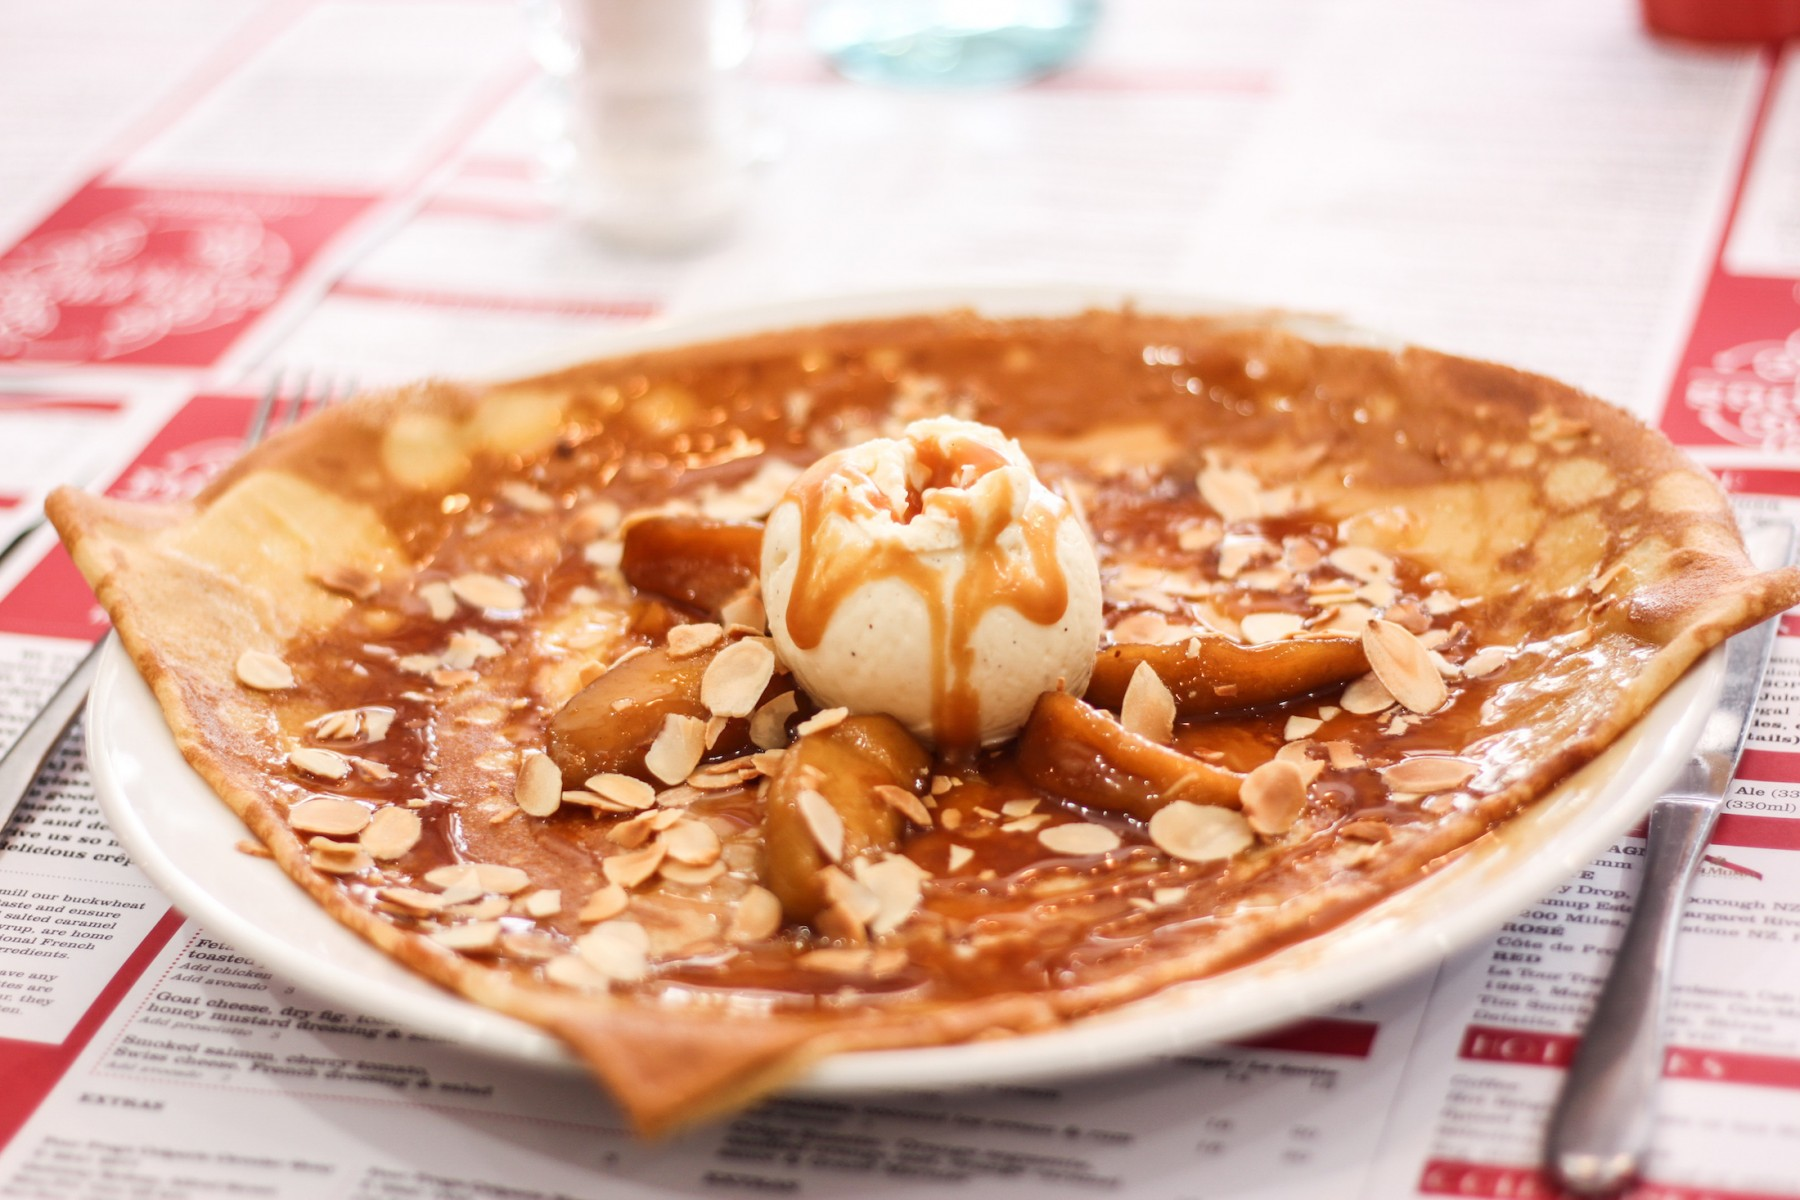 Apple caramel crepe